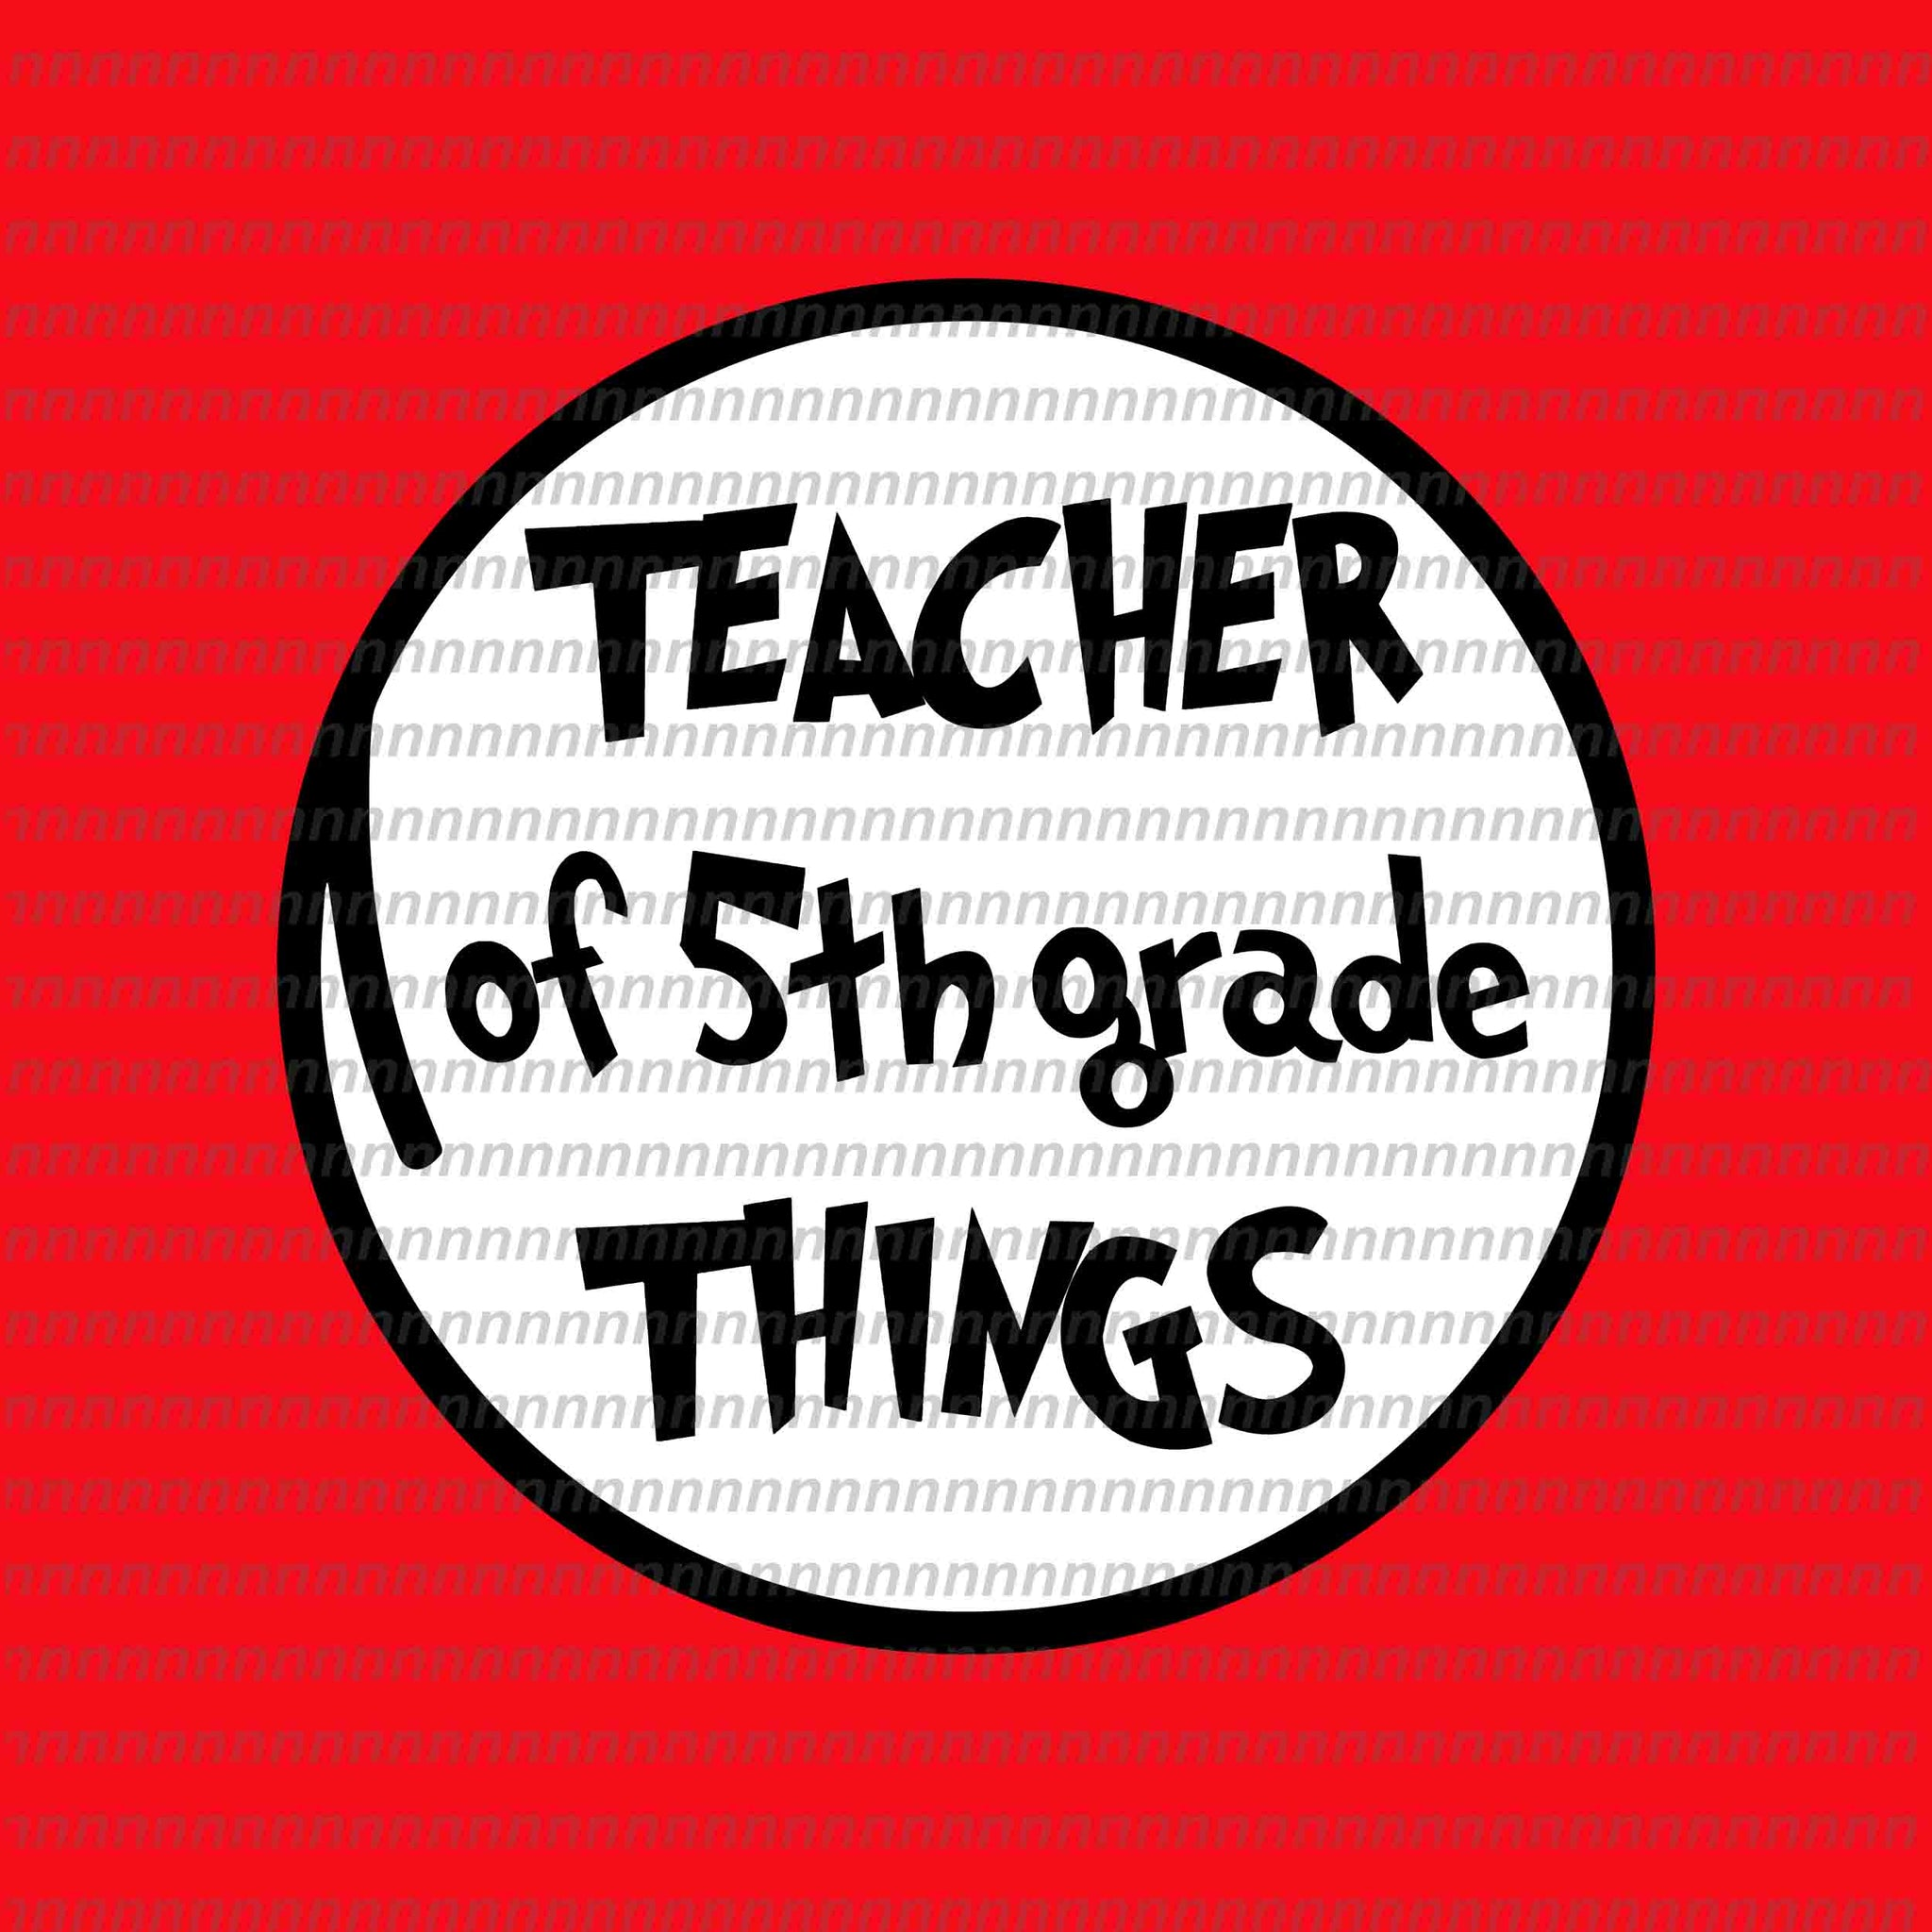 Teacher of 5th grade things svg, dr seuss svg,dr seuss vector, dr seuss quote, dr seuss design, Cat in the hat svg, thing 1 thing 2 thing 3, svg, png, dxf, eps file